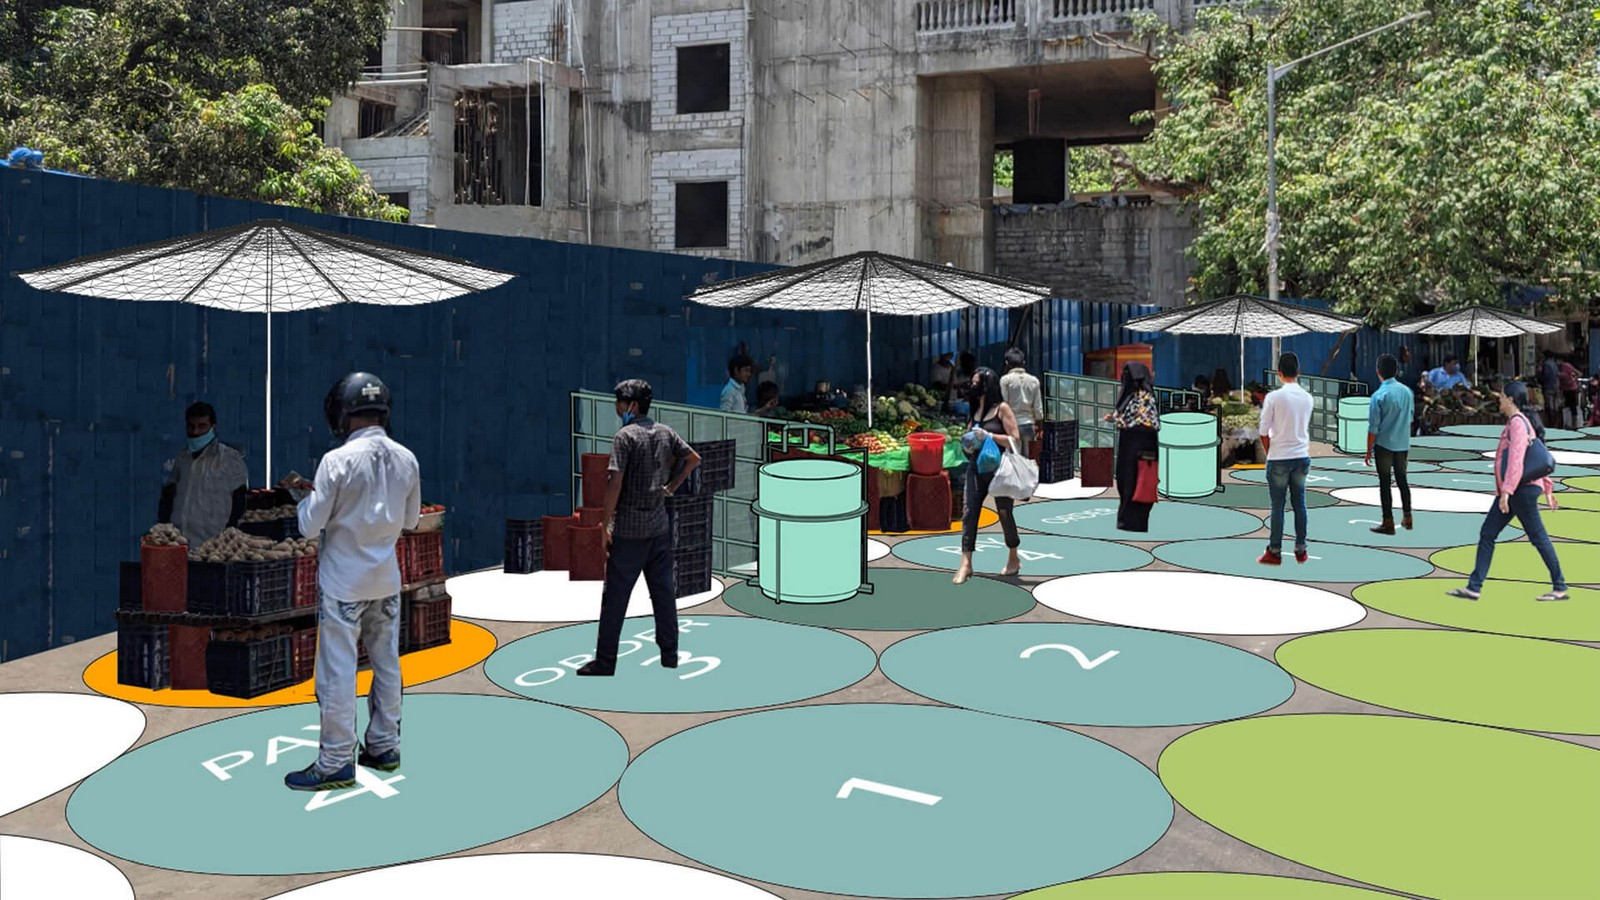 Social distancing and urban planning- The changing urban landscape - Sheet3